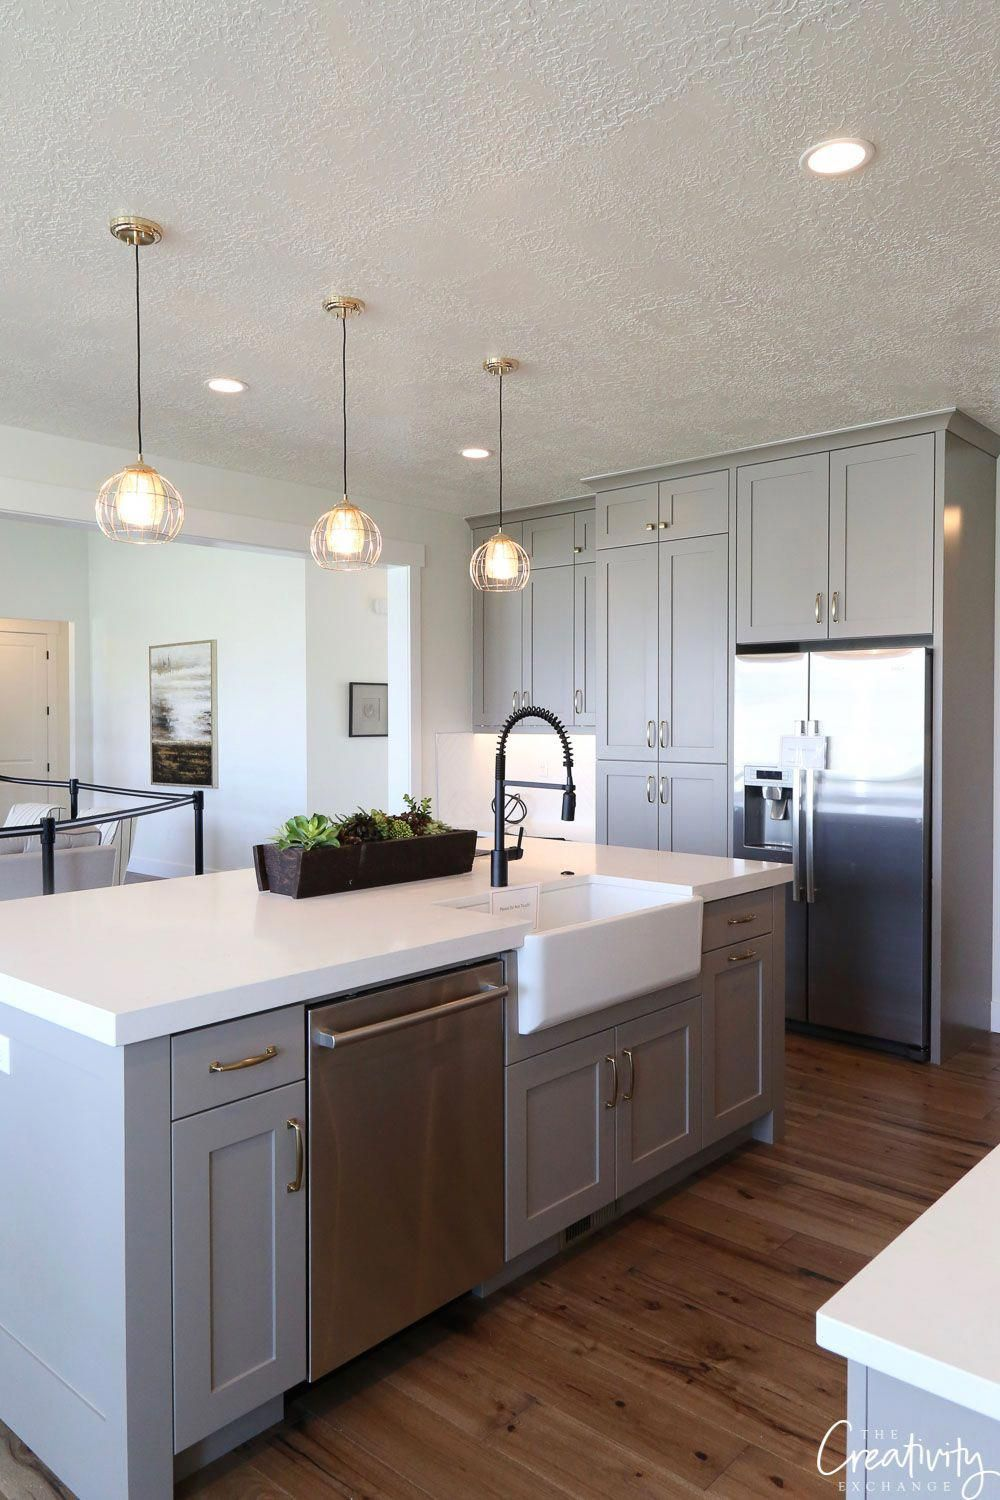 Modern Farmhouse Kitchen Cabinets Bm Shale Note Rough Finish To Ceiling Looks Li Modern Farmhouse Kitchens Farmhouse Style Kitchen Farmhouse Kitchen Cabinets